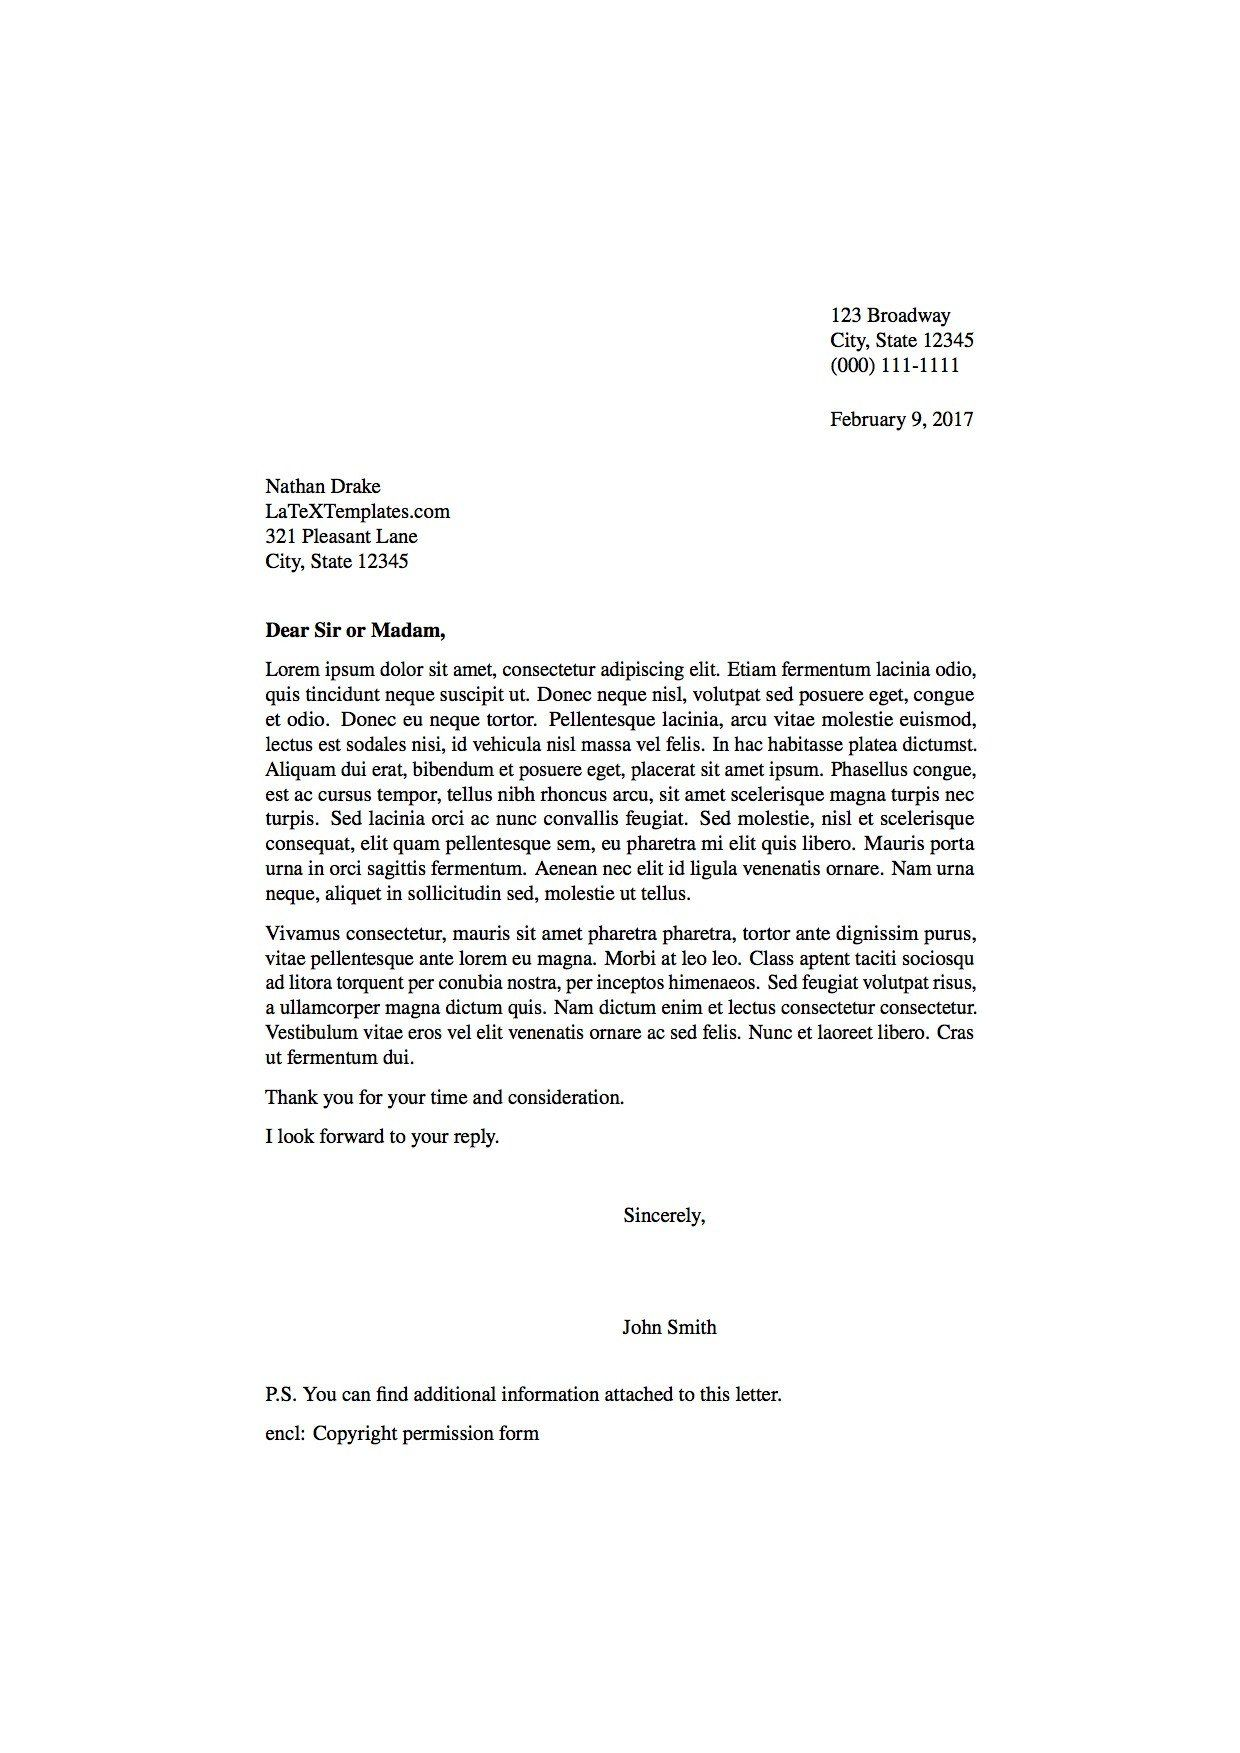 Formal Letter Template Word Best Of Template for A formal